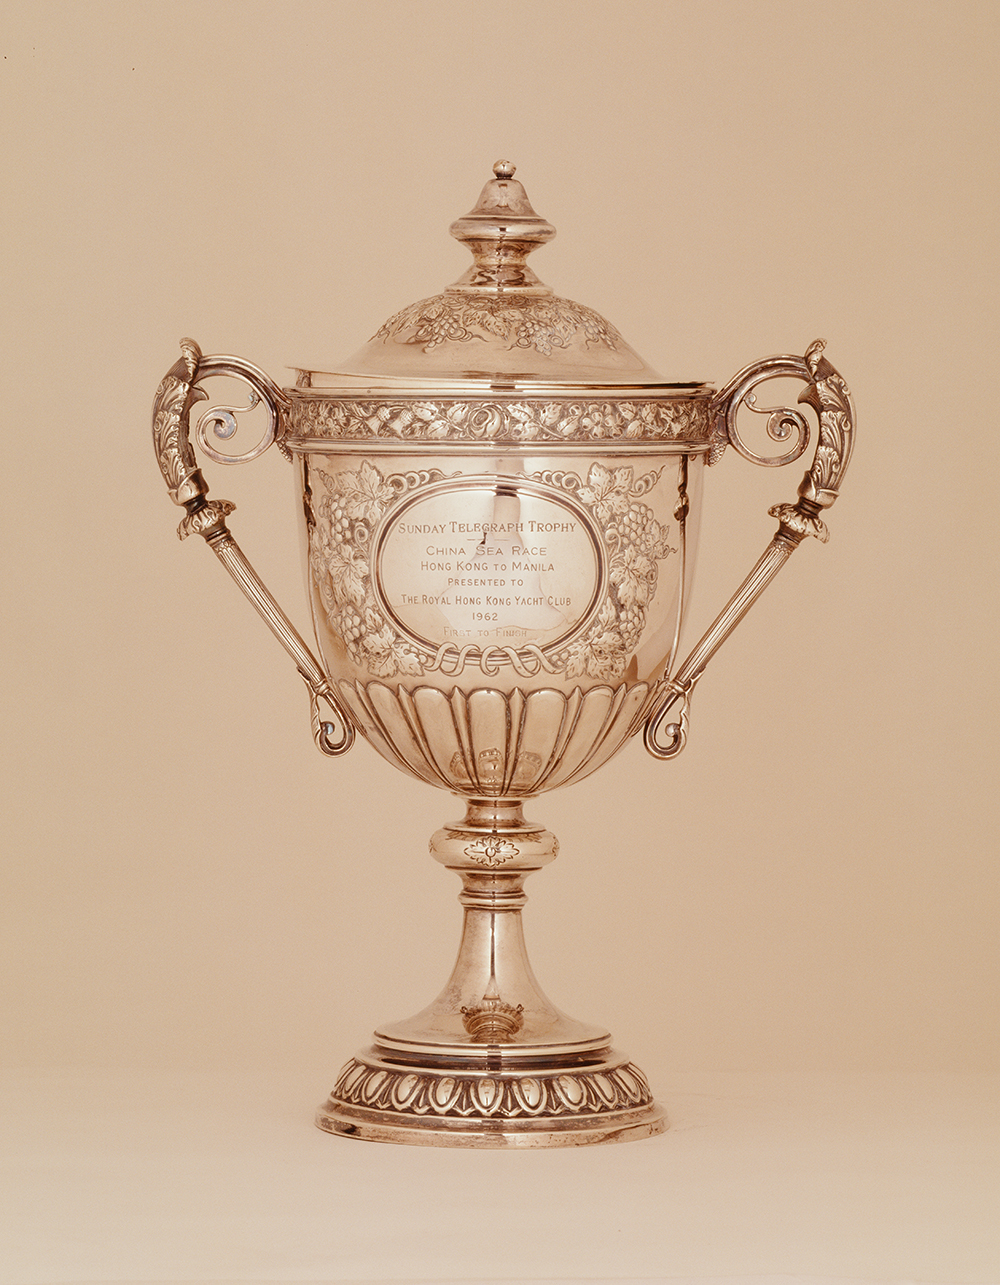 Sunday Telegraph Trophy